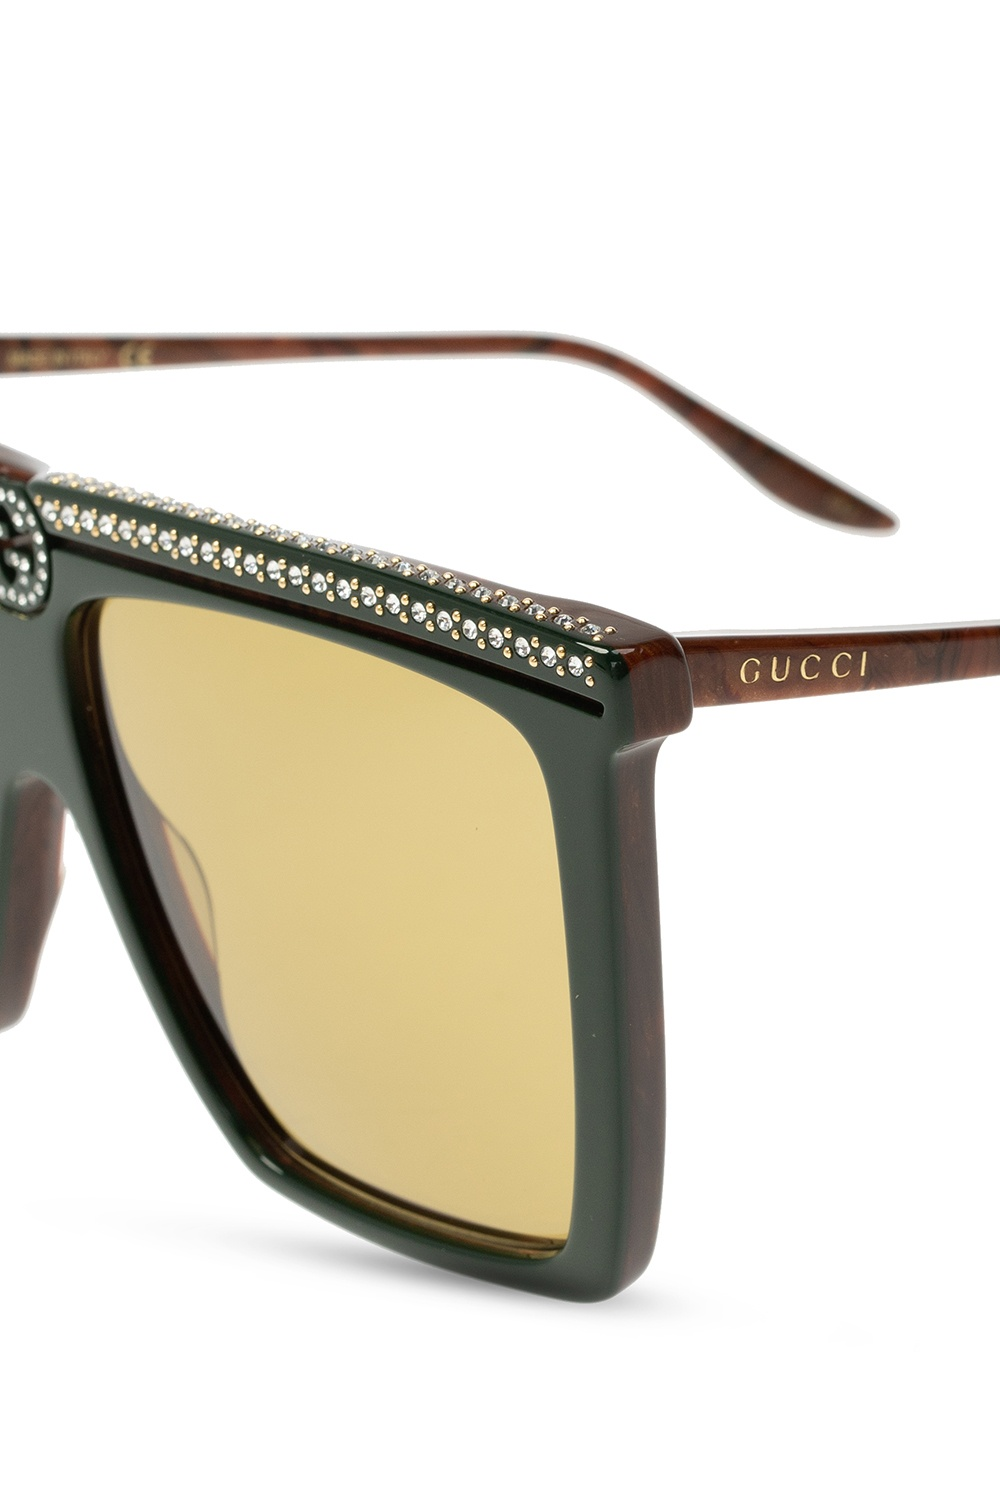 Gucci Logo sunglasses